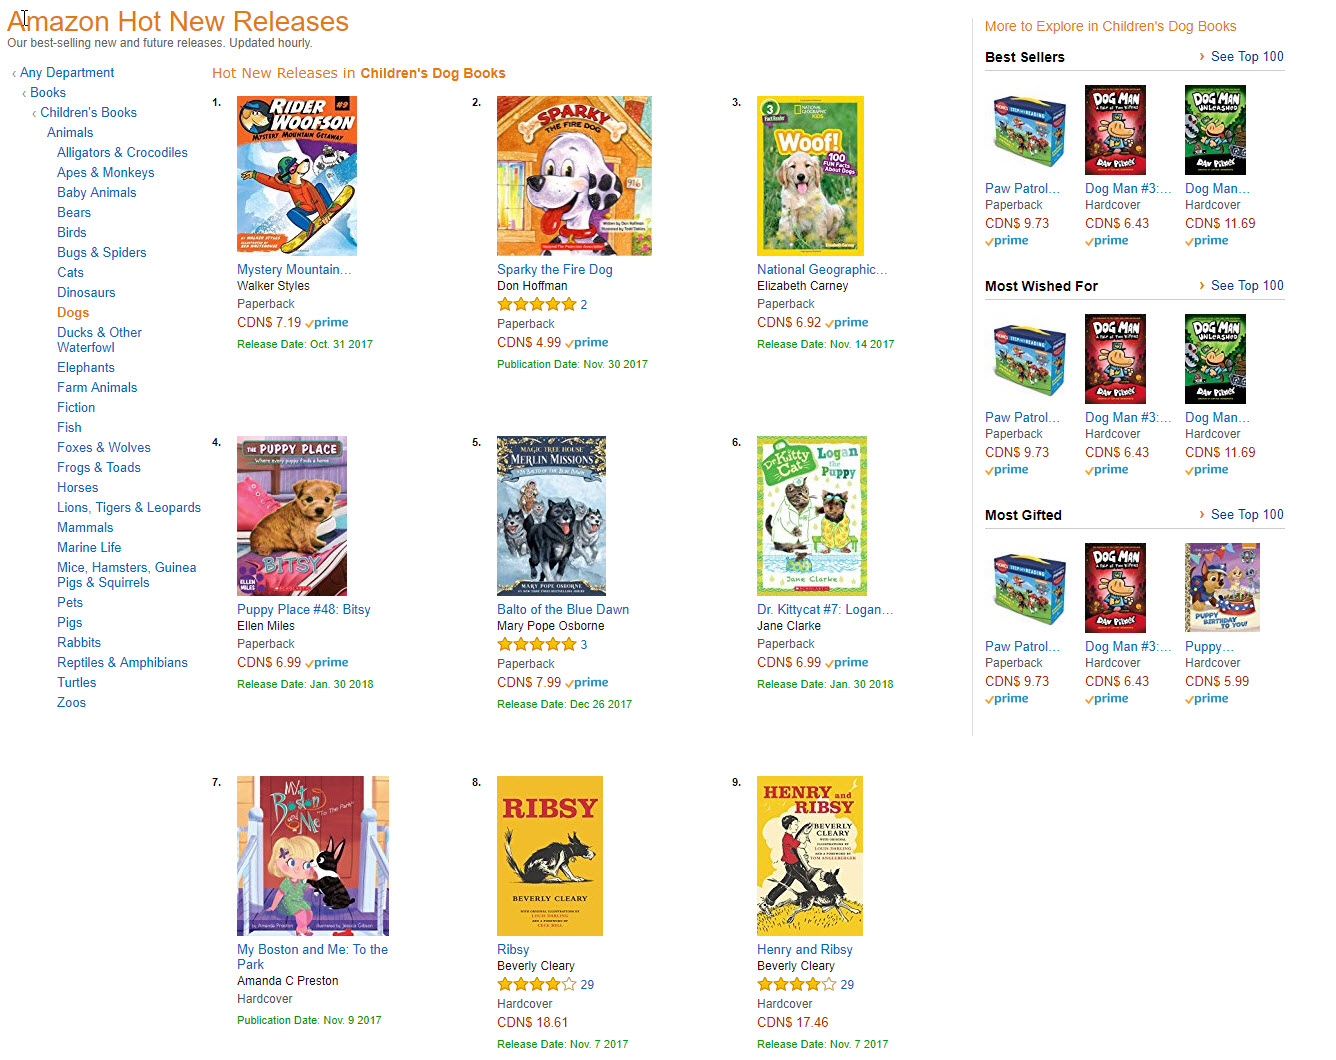 Amazon.ca Hot New Releases Children's Dog Books